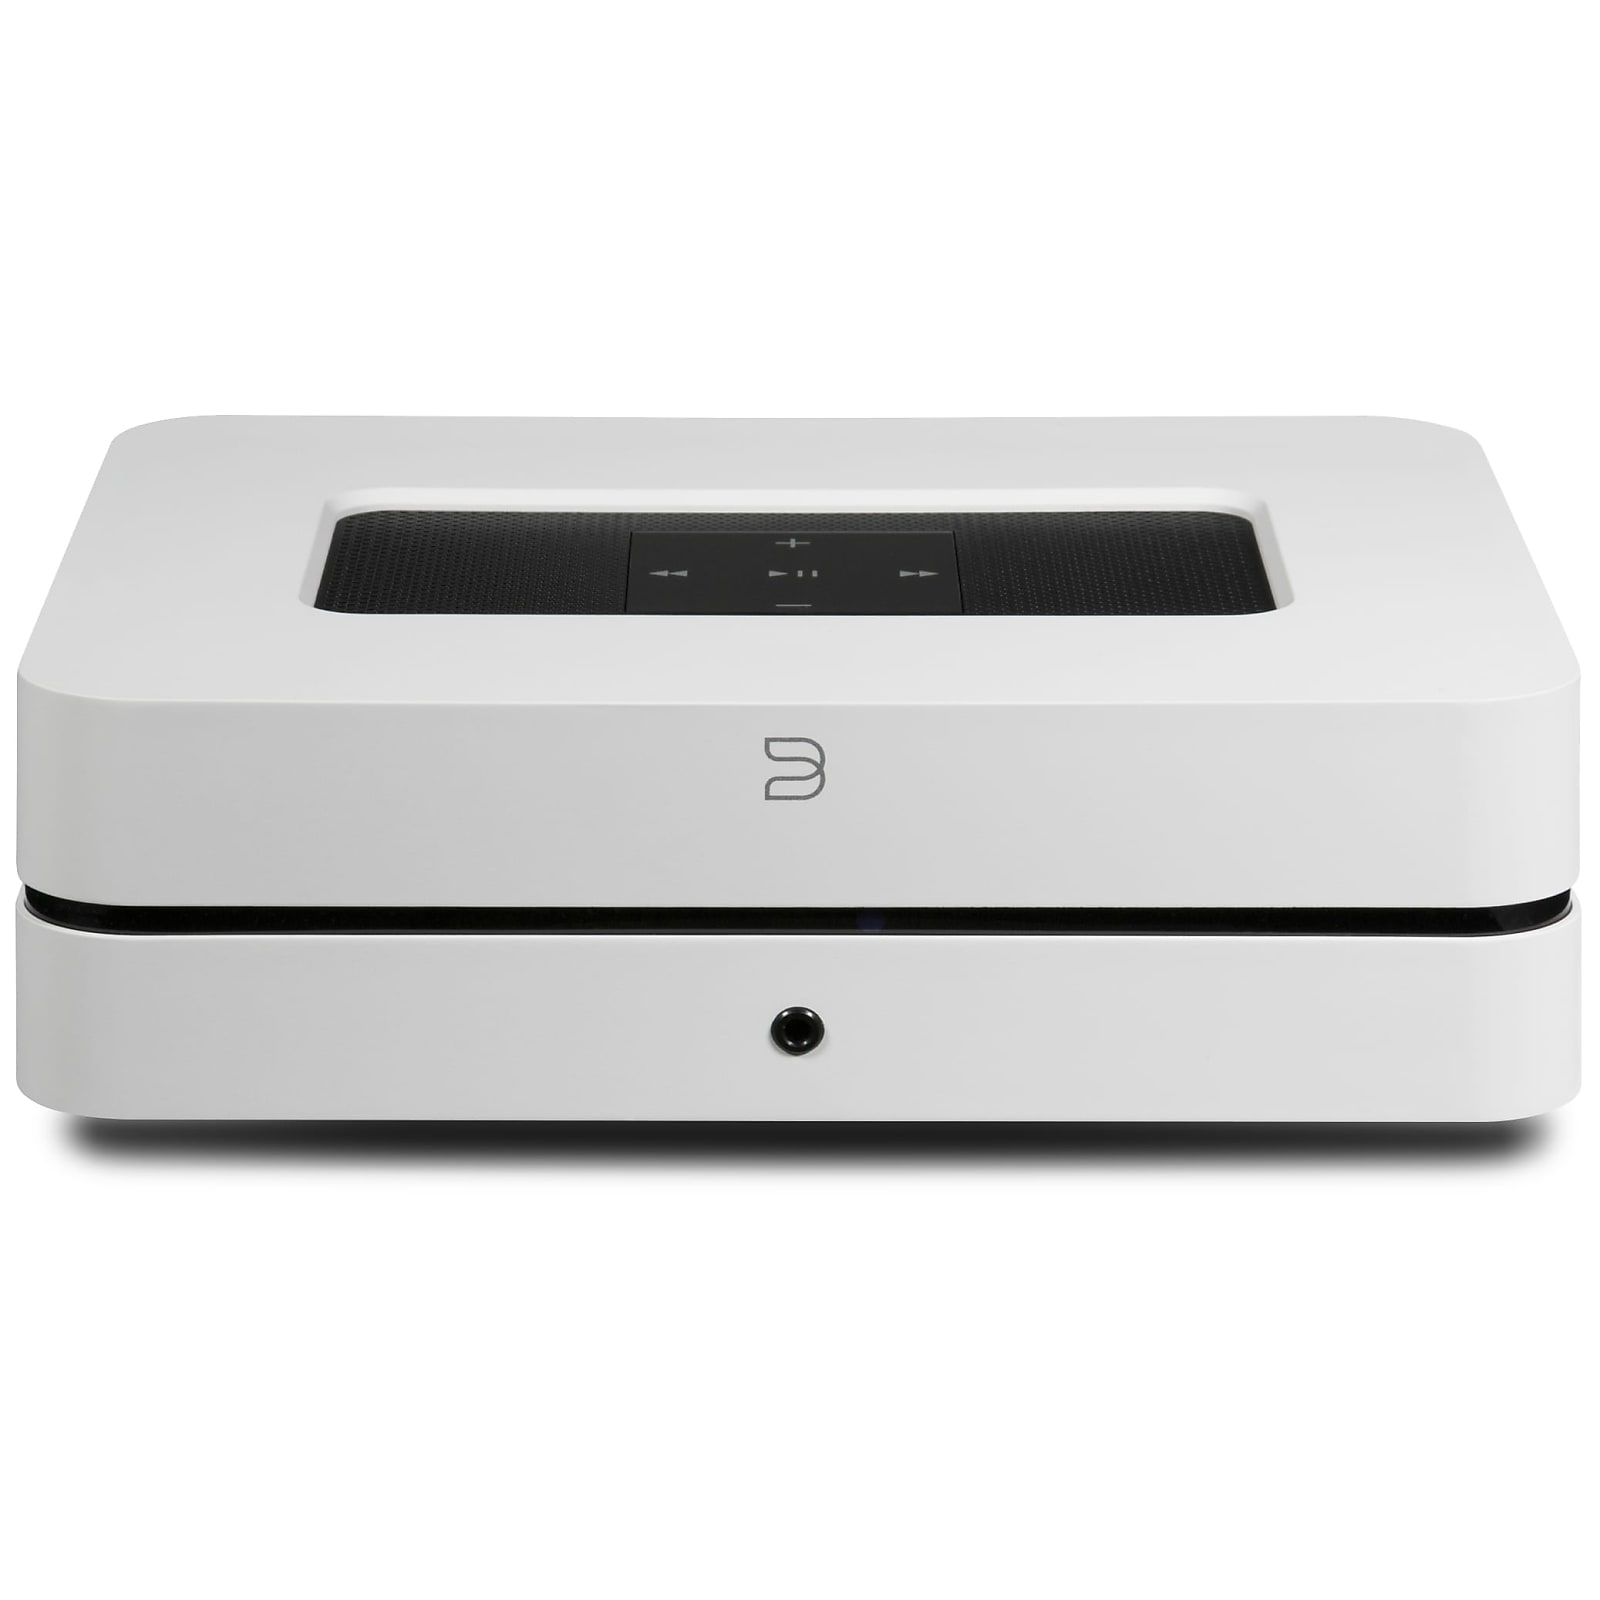 BlueSound PowerNode 2i Wireless Multi-Room Music Streaming Amplifier - White